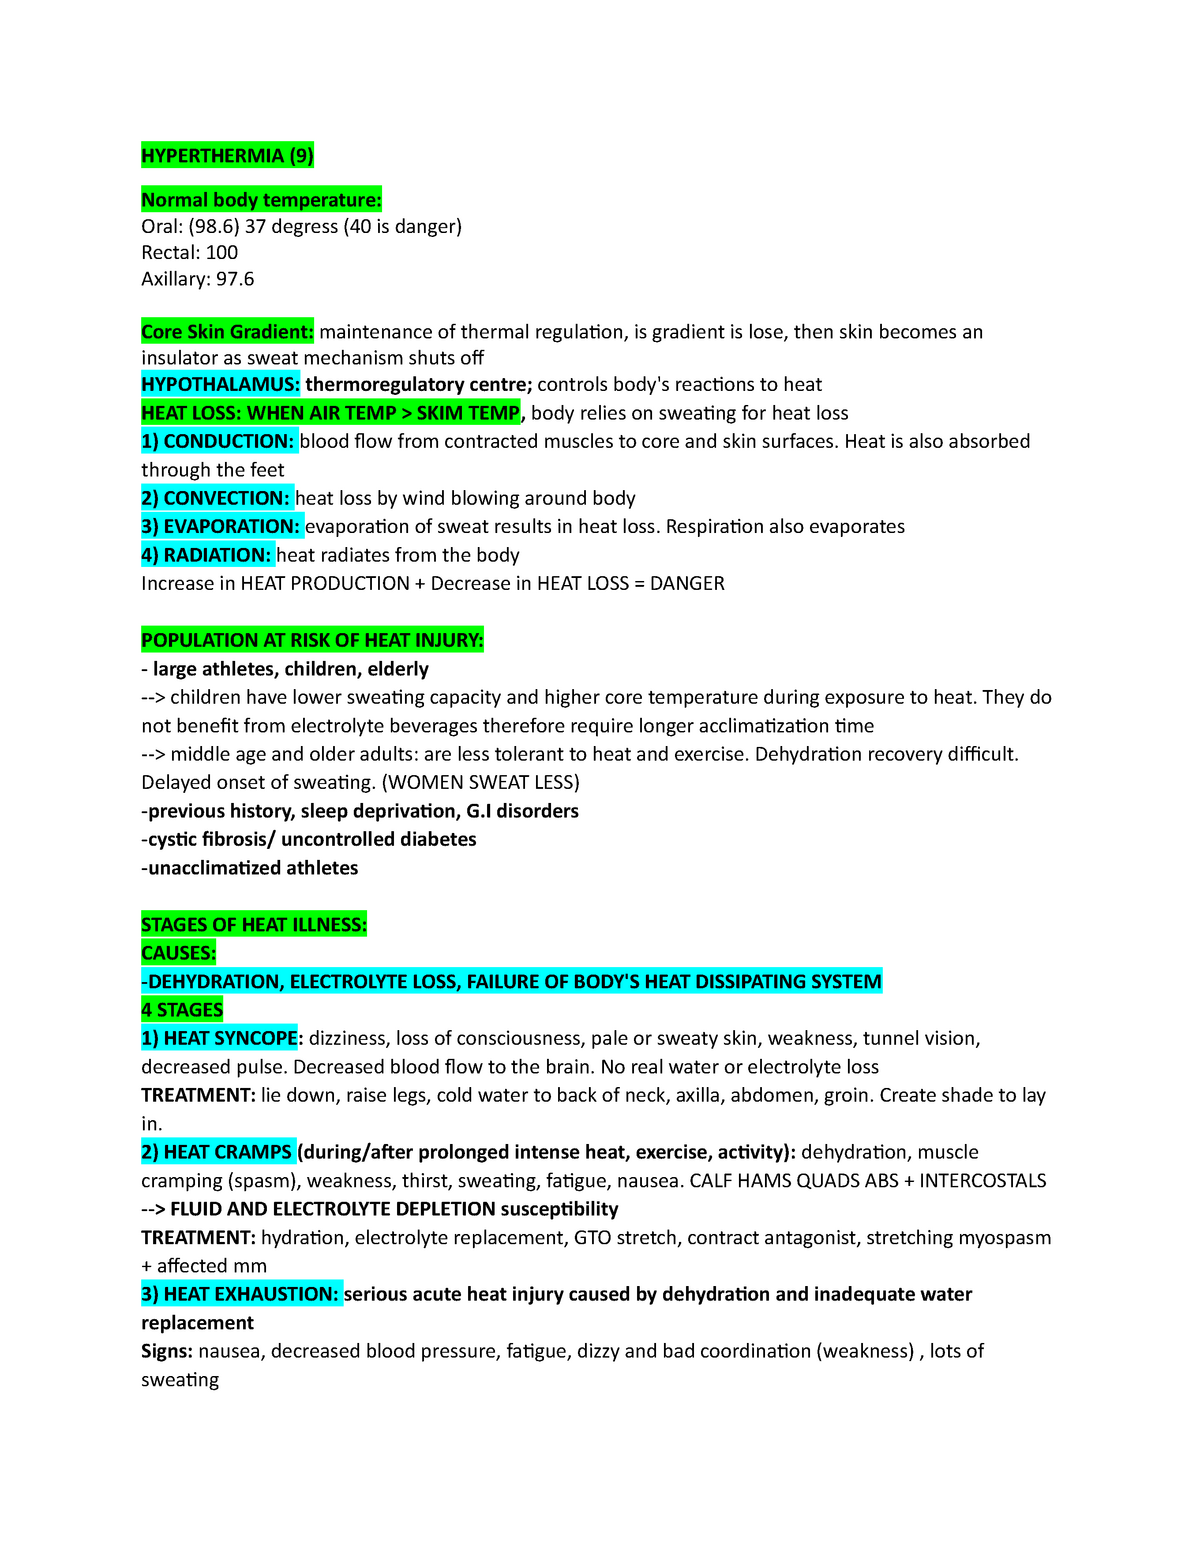 Lecture notes, lectures 6-12 - Final Exam Courses - Hh/Kine